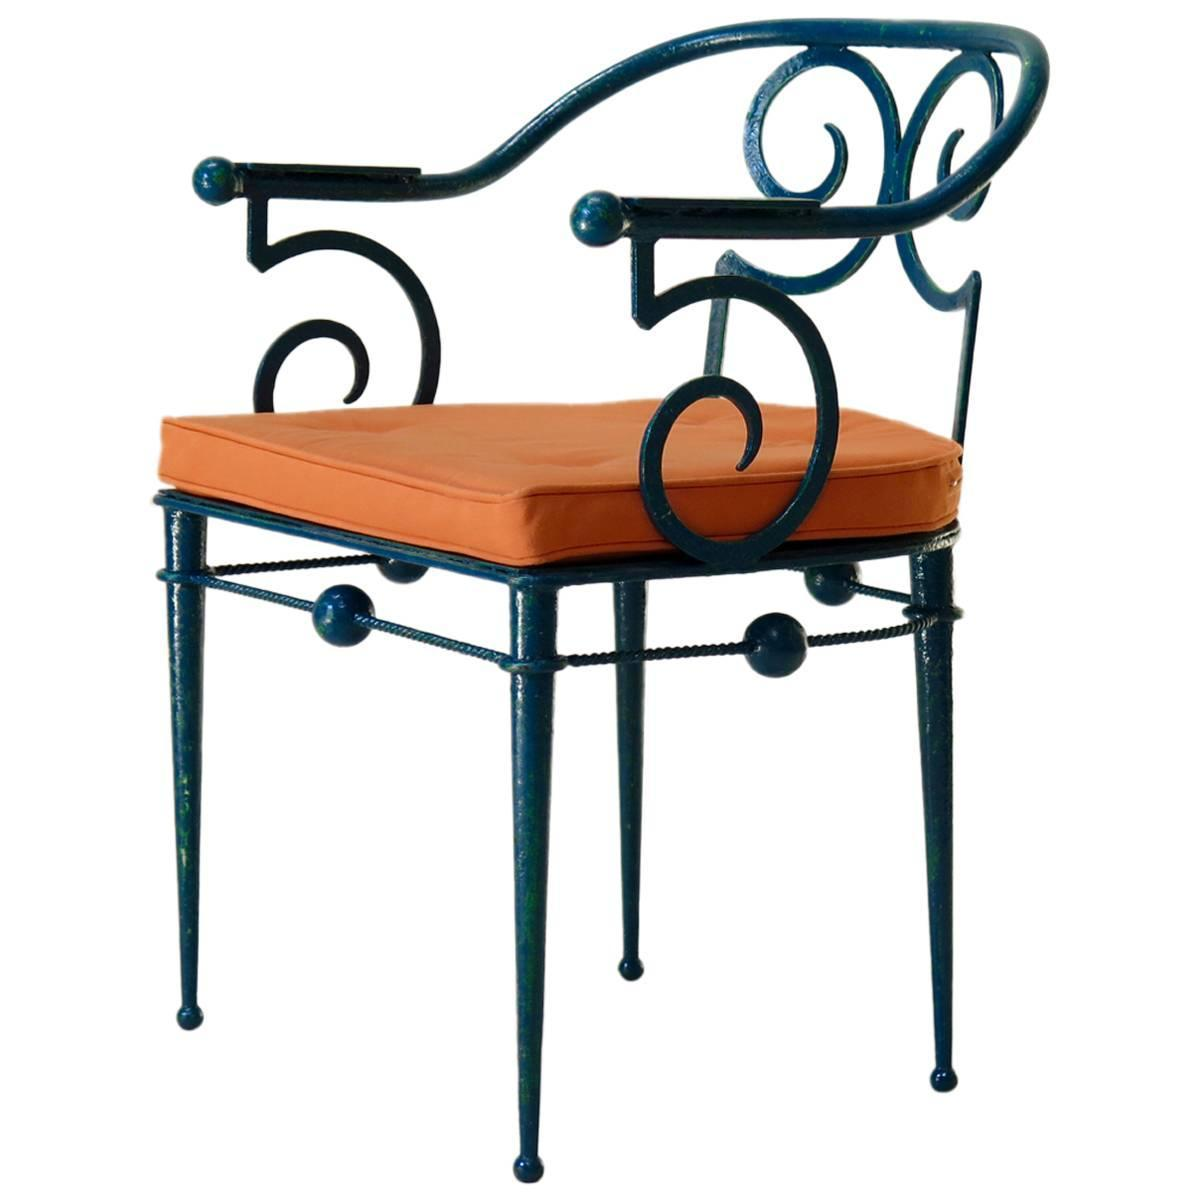 wrought iron chairs deco wrought iron chair in the style of 31263